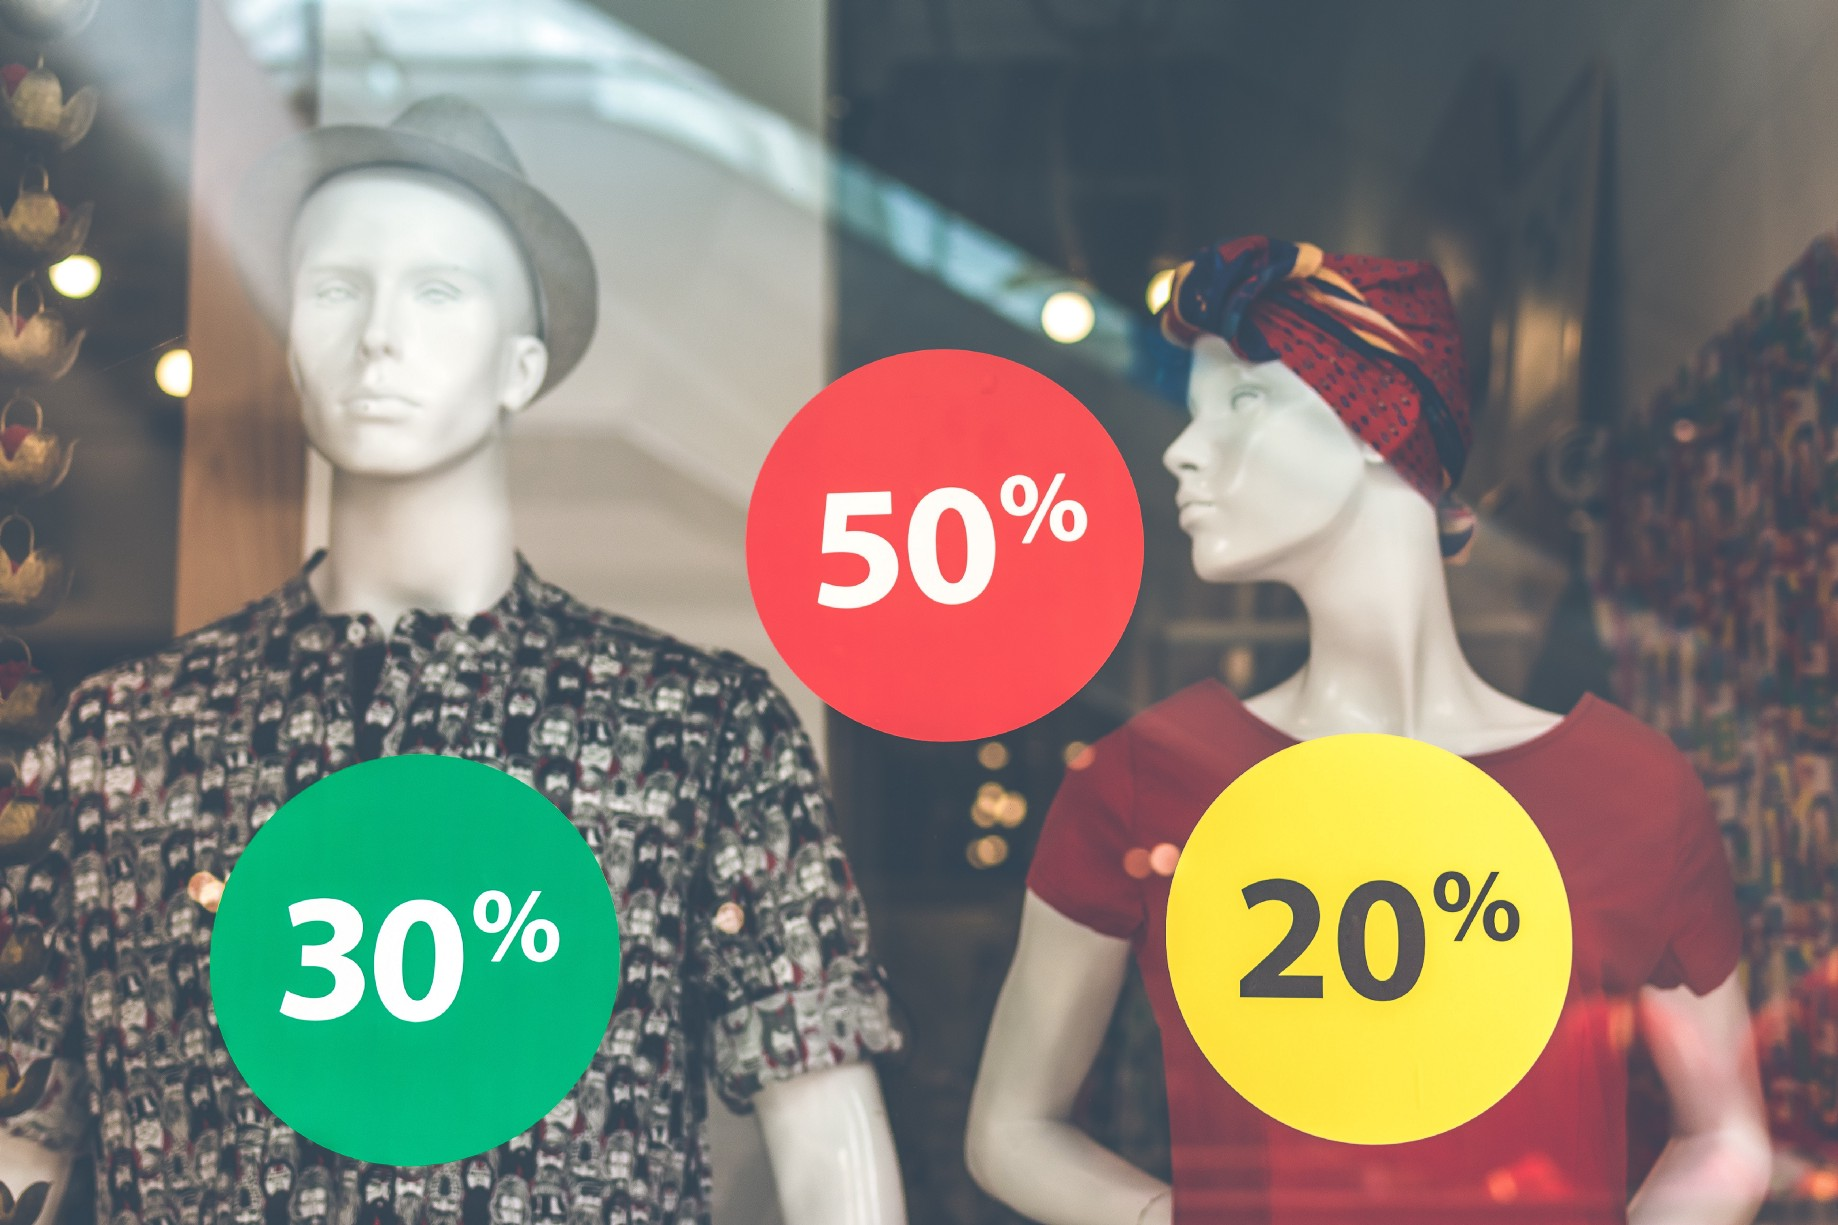 IoT also applies for fashion stores - IoT Security Review